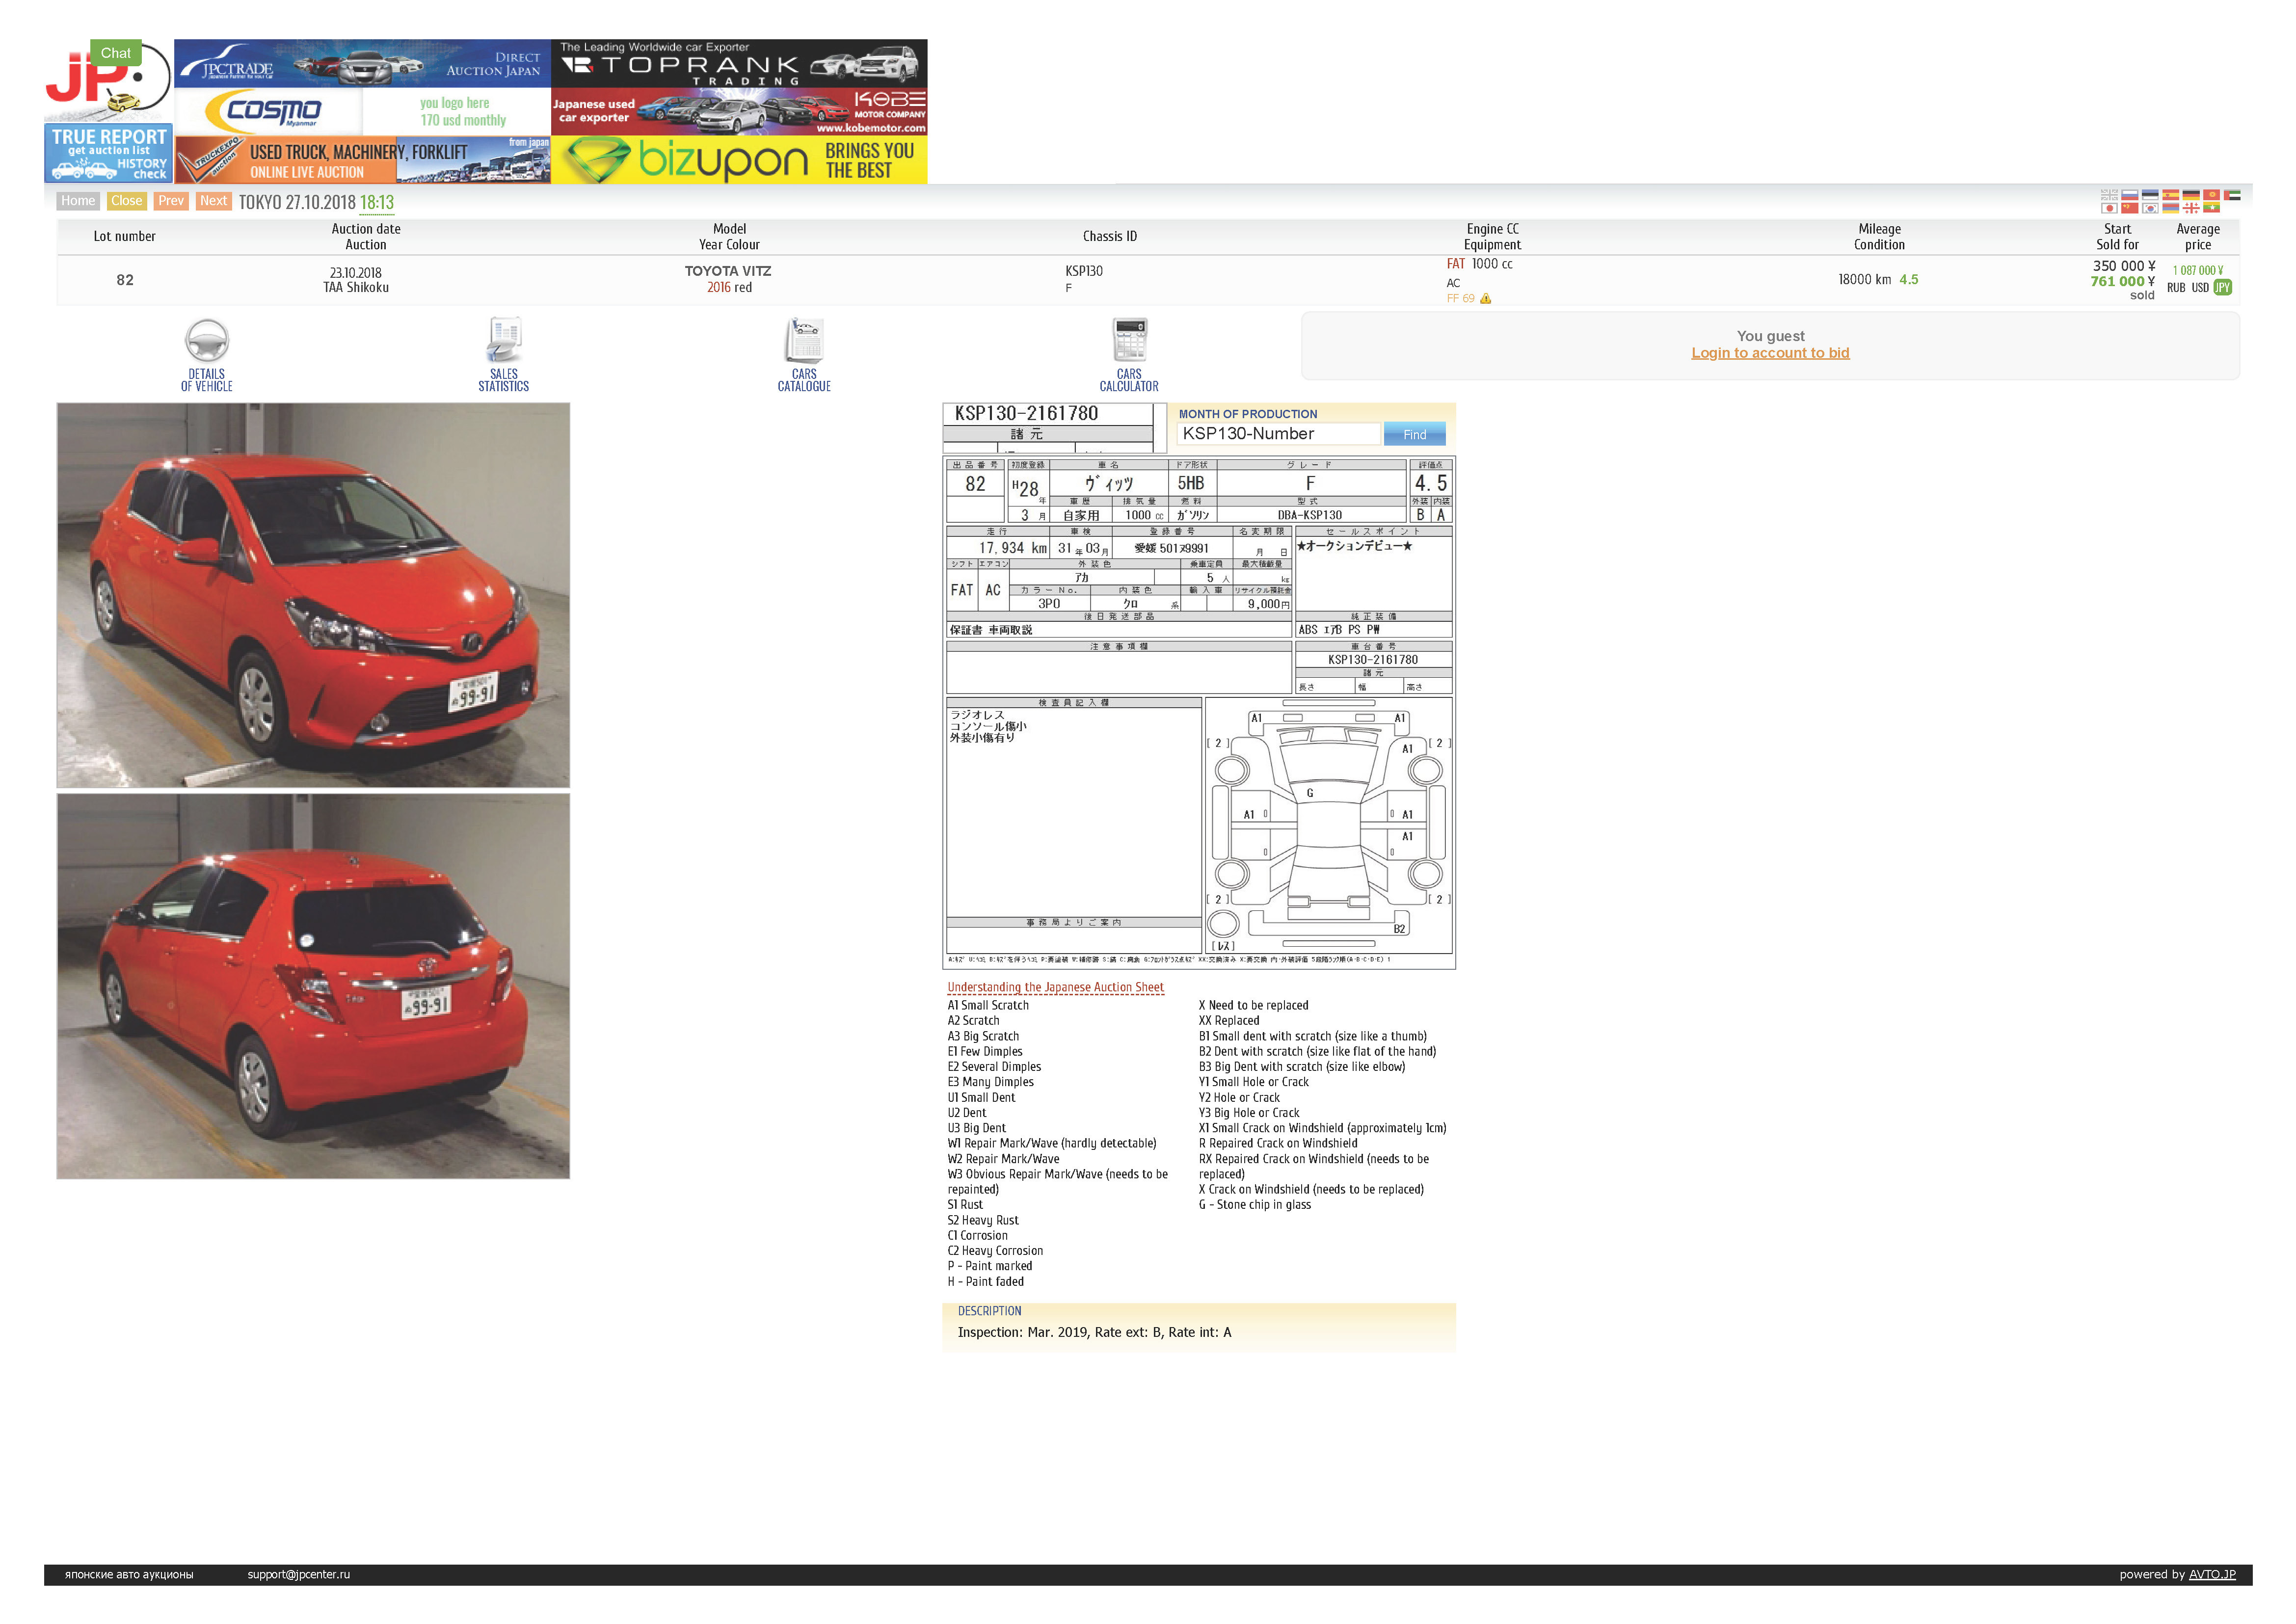 My JDM Toyota Vitz in Super RED Color (2015 model